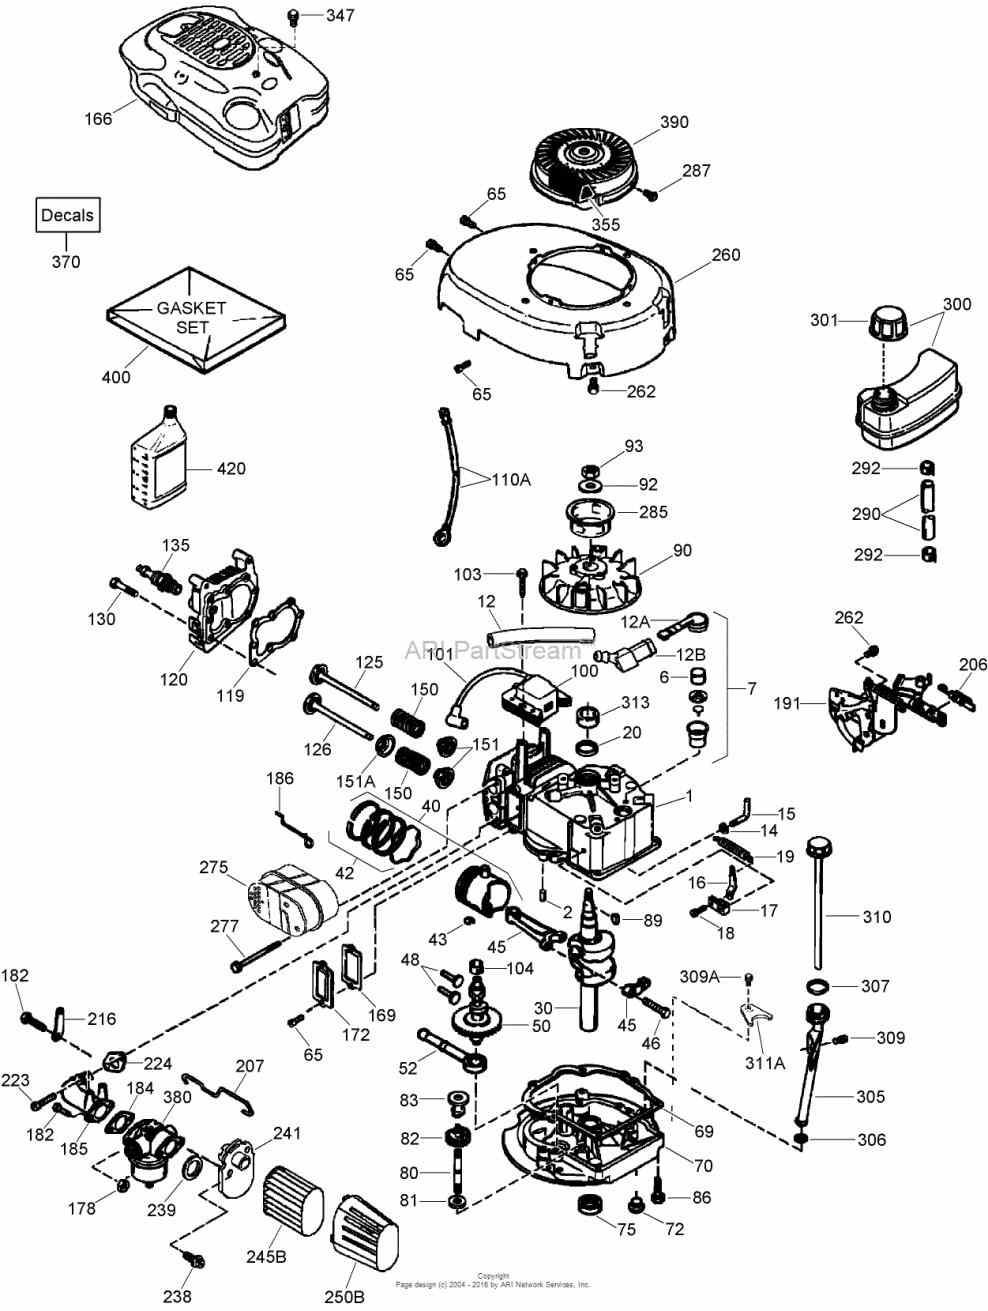 john deere riding mower wiring diagram john deere riding lawn mower parts diagram automotive riding mower engine diagram